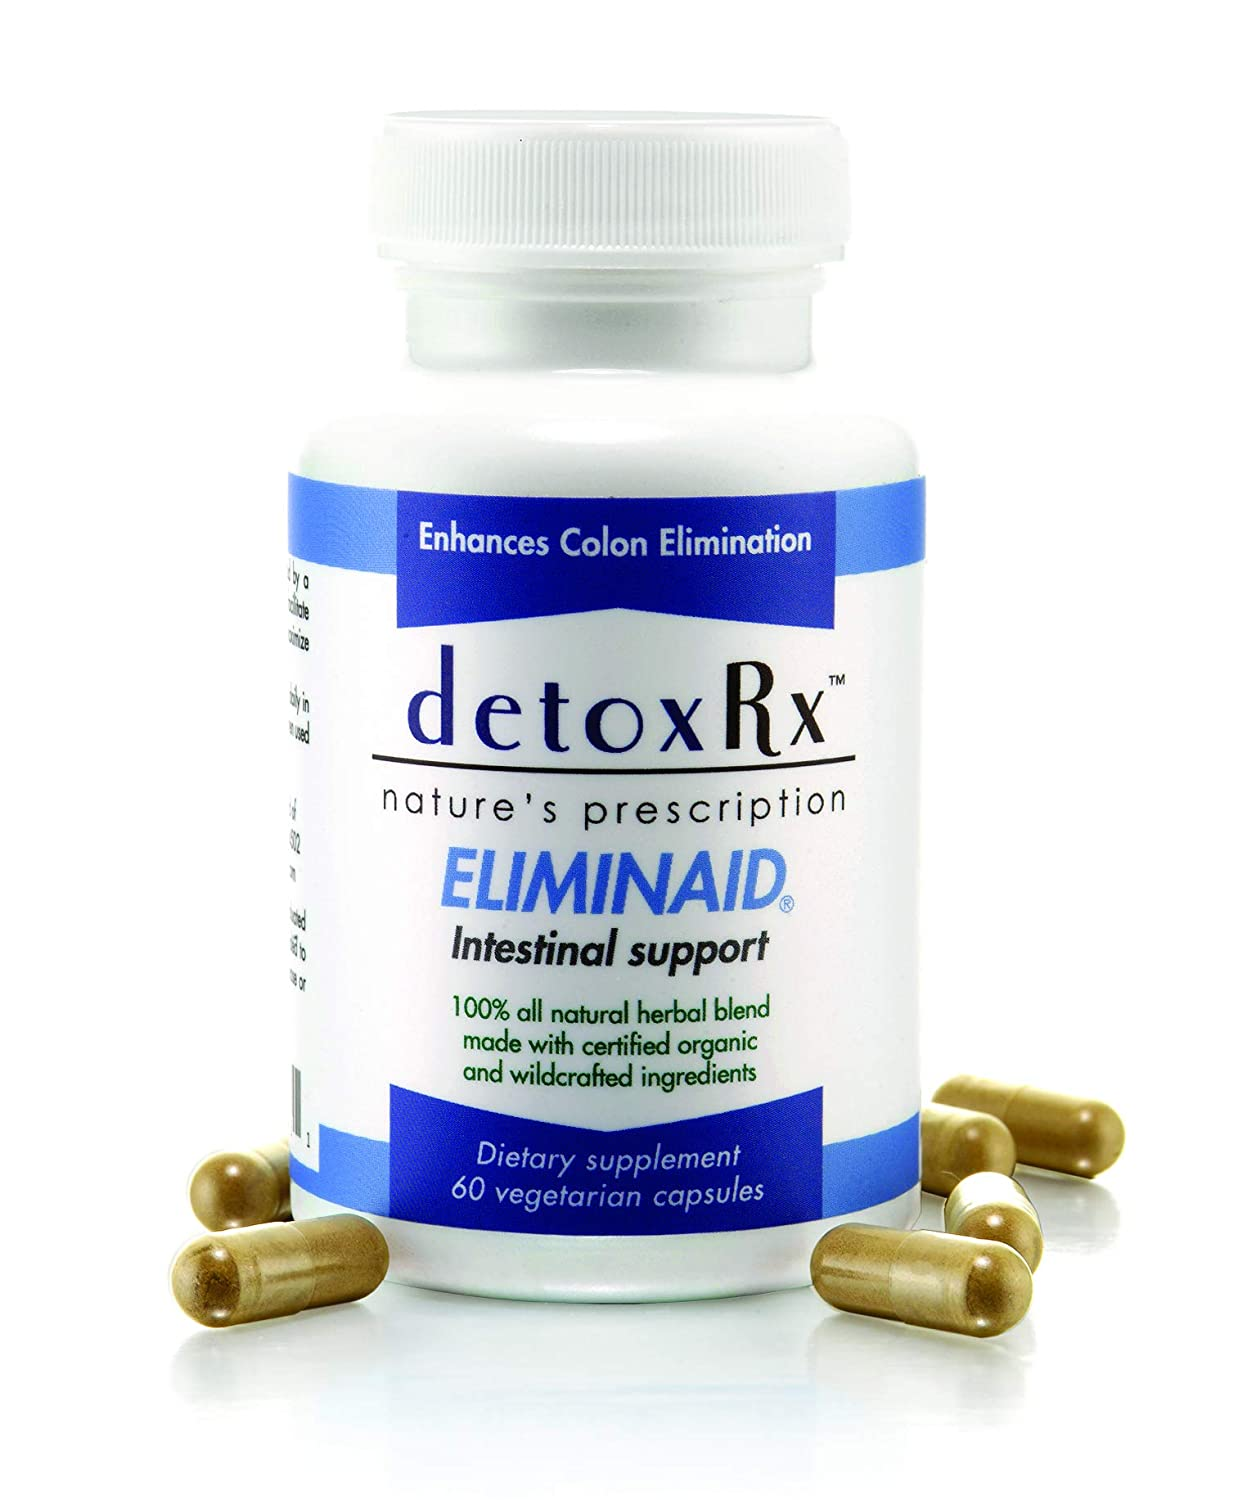 DetoxRx Eliminaid – provides gentle elimination assistance during times of stress, illness, immobility, travel, dietary changes or as a result of prescription medications